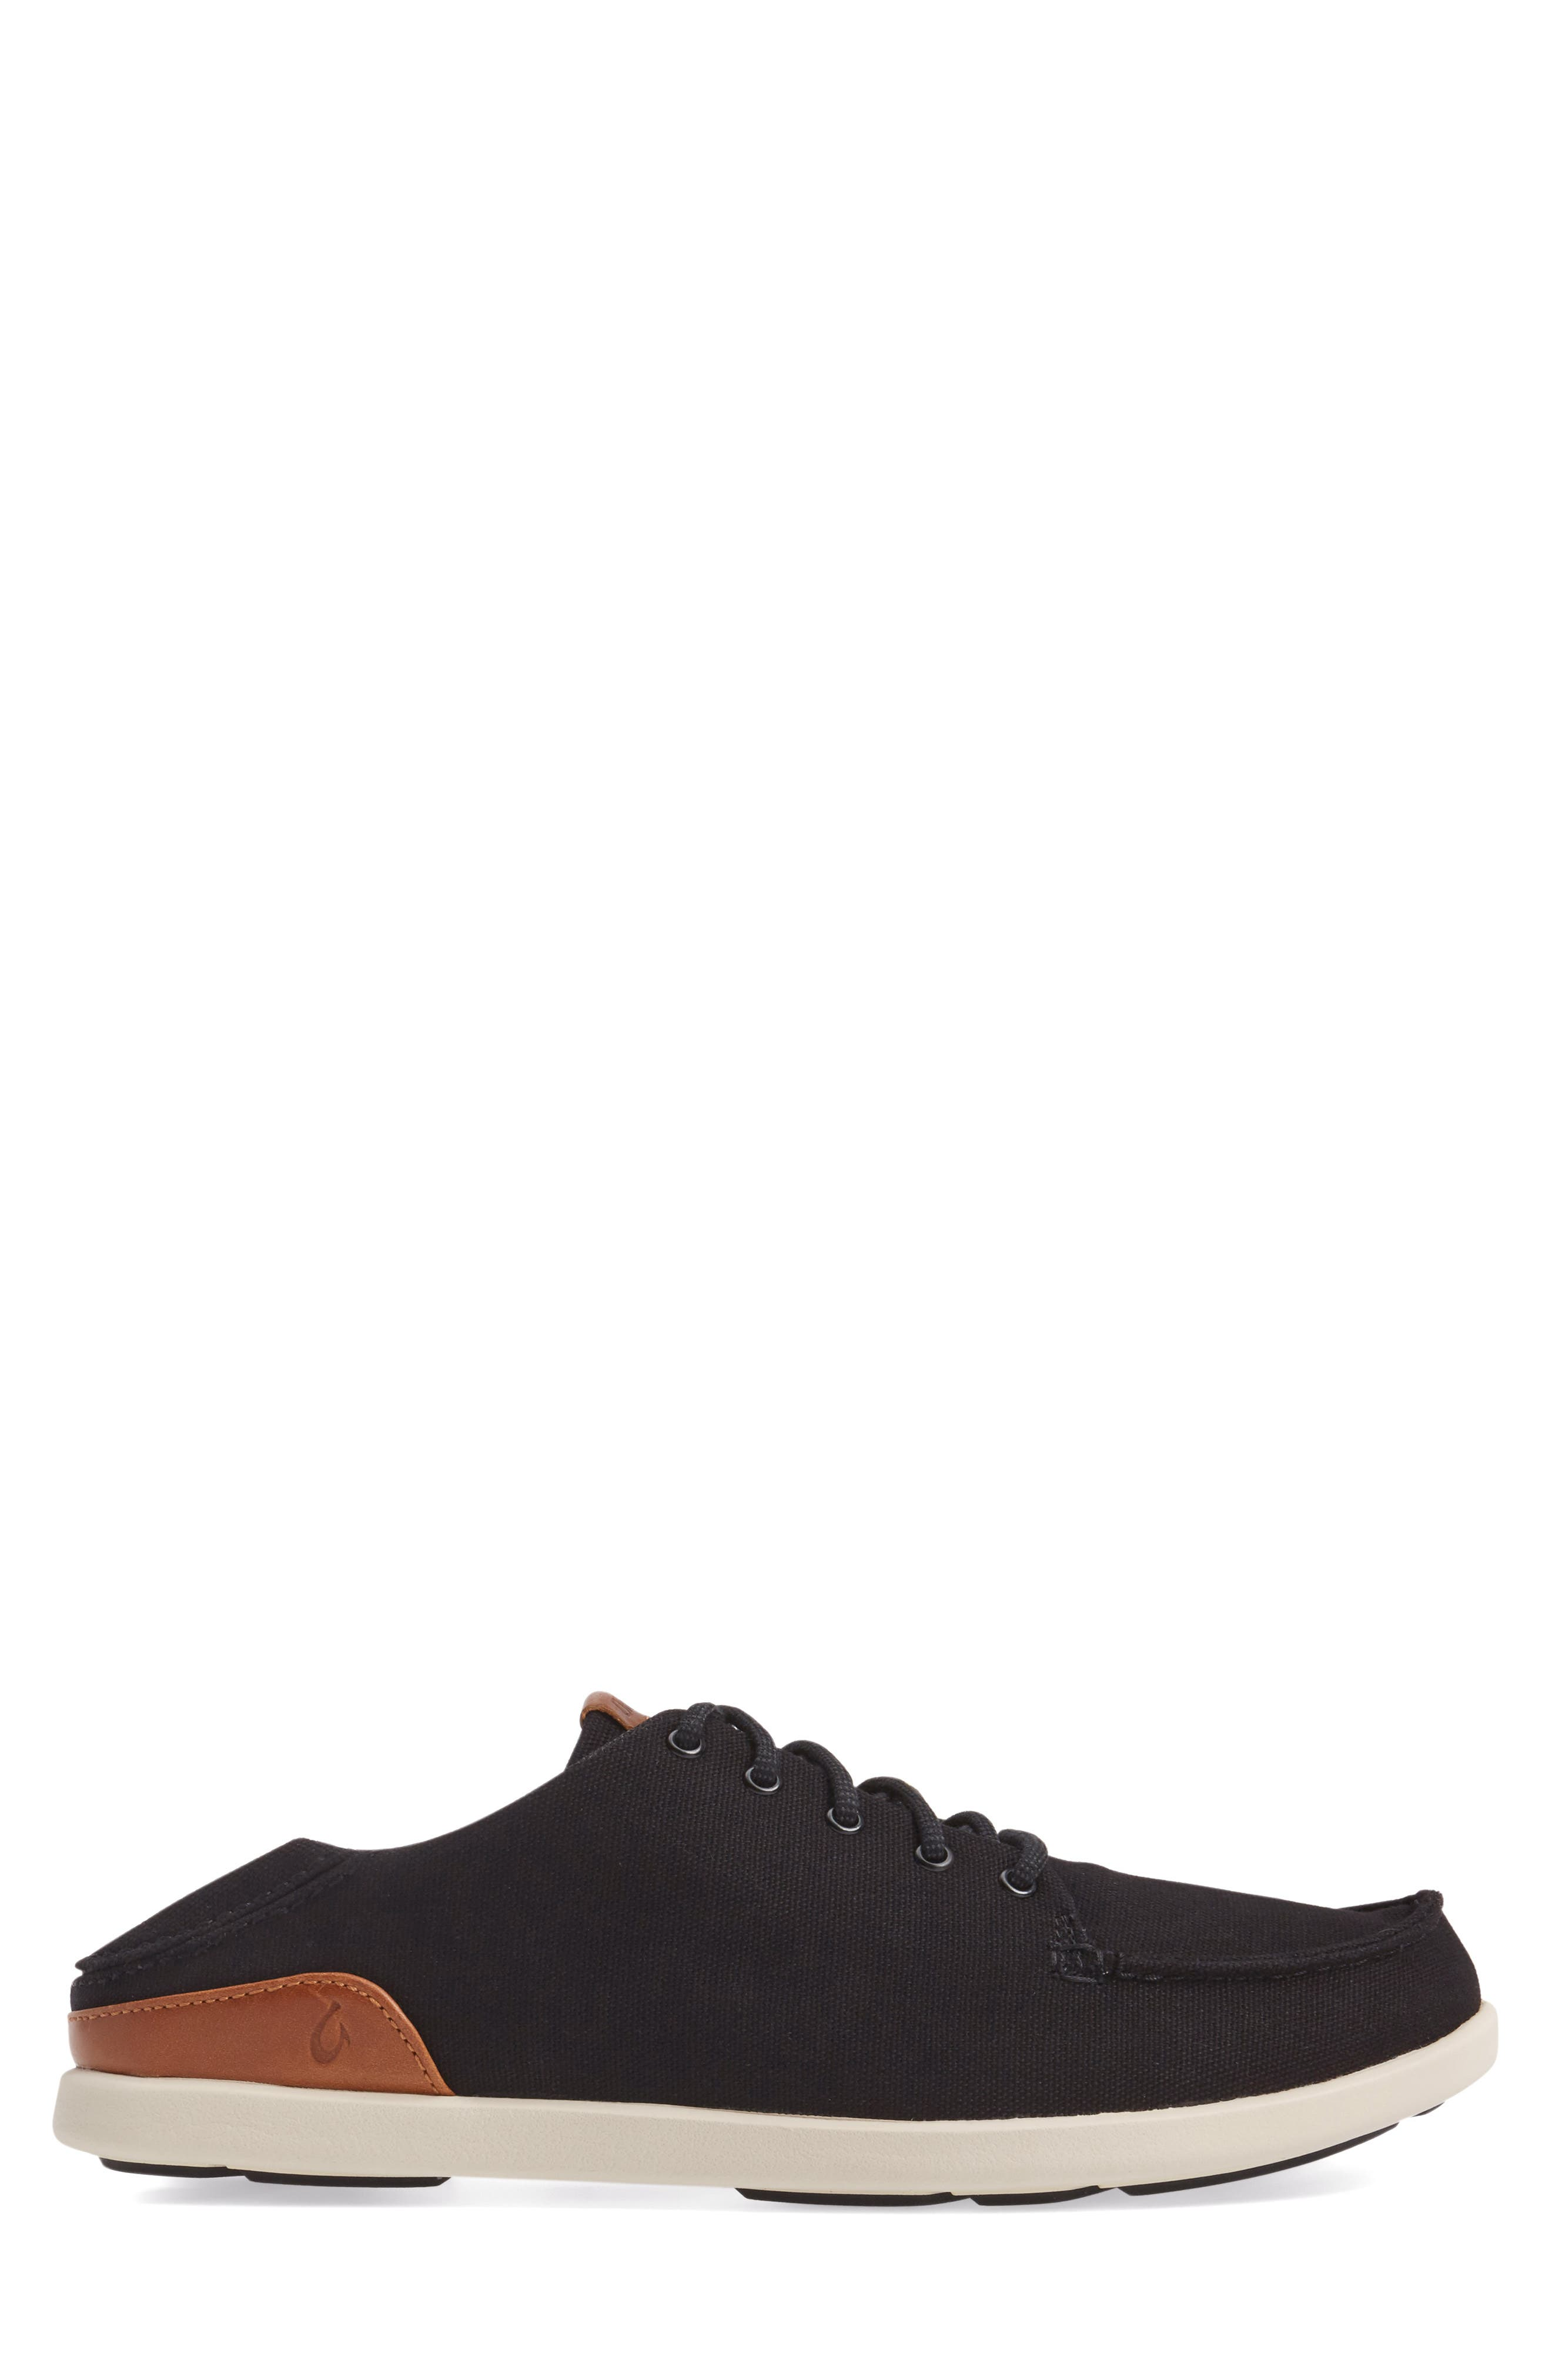 Manoa Sneaker,                             Alternate thumbnail 3, color,                             BLACK/ MUSTARD